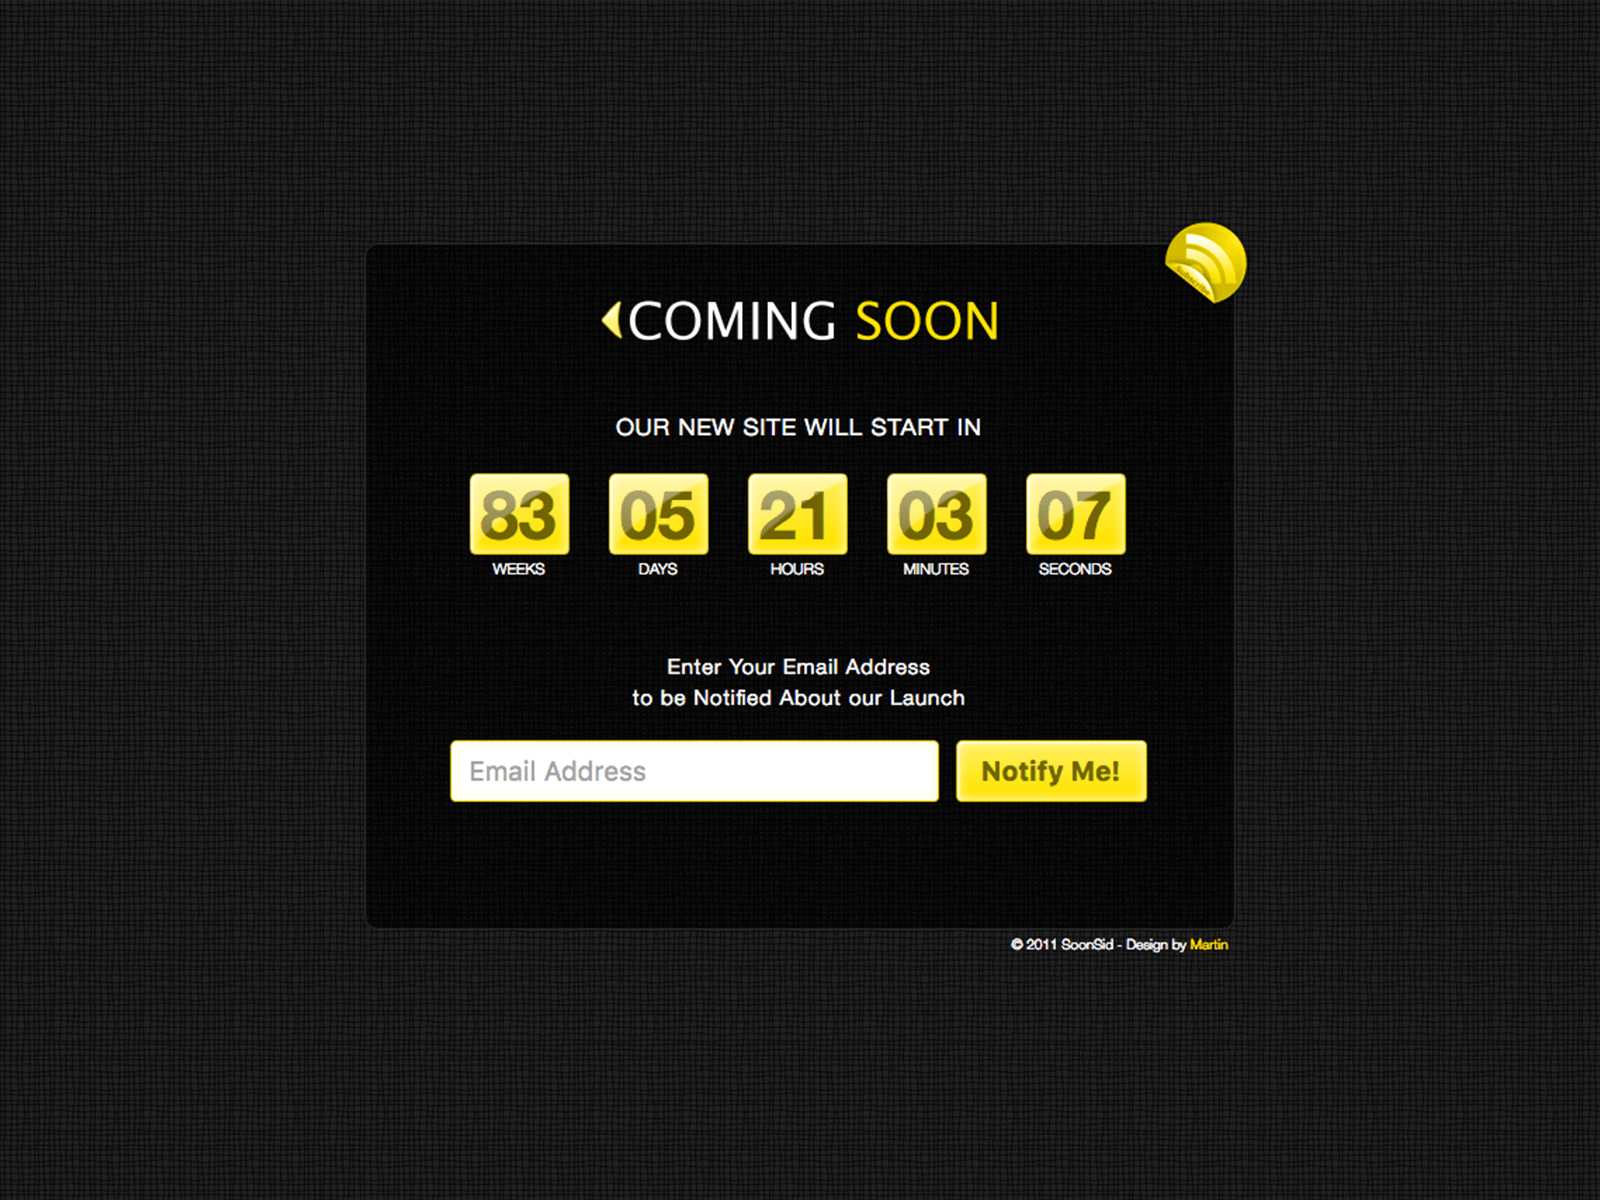 SoonSid - Coming Soon Template